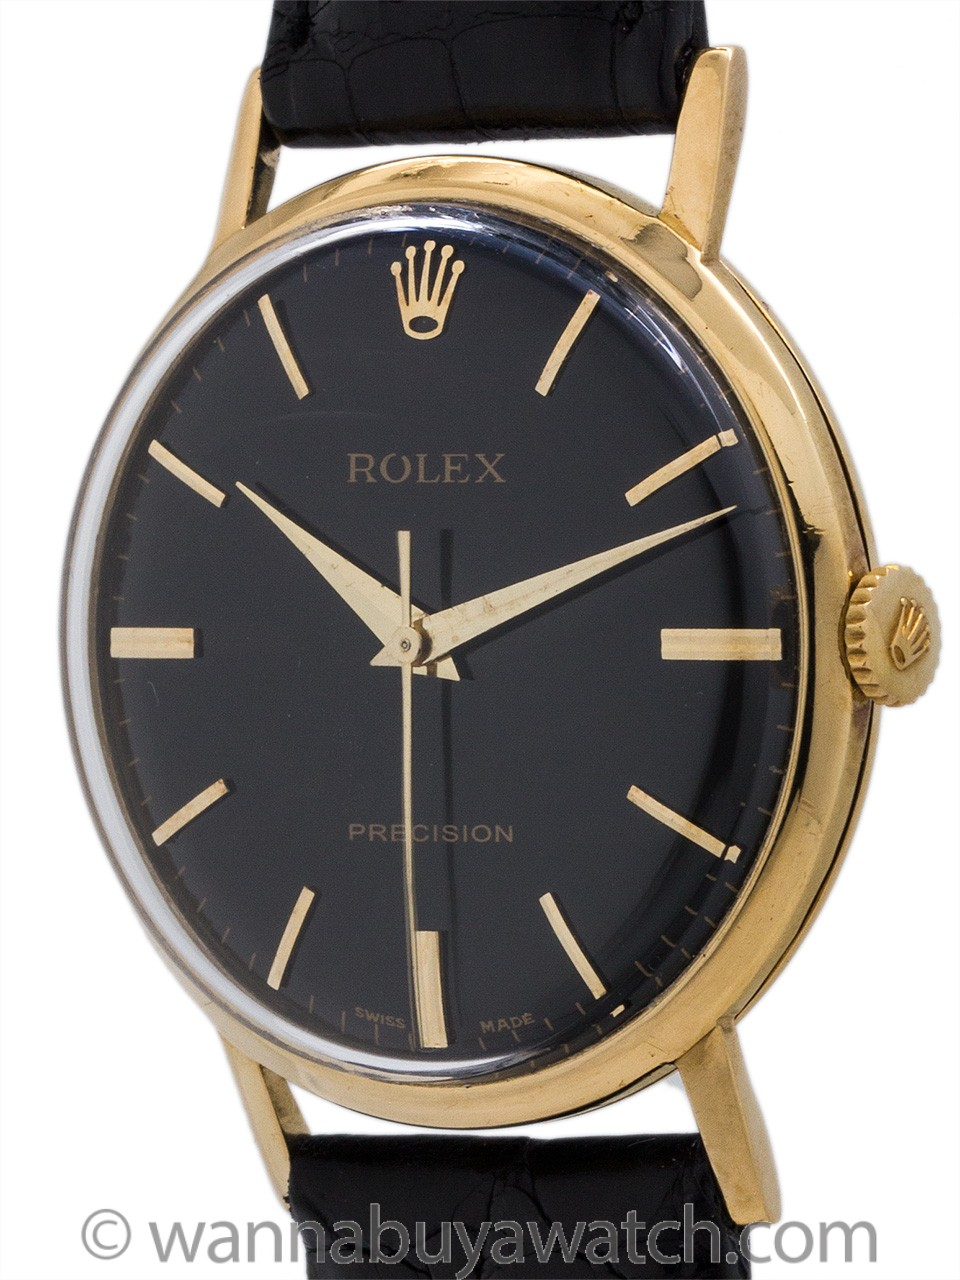 Rolex 14K Gold Manual Wind Dress Model ref 9708 circa 1950's